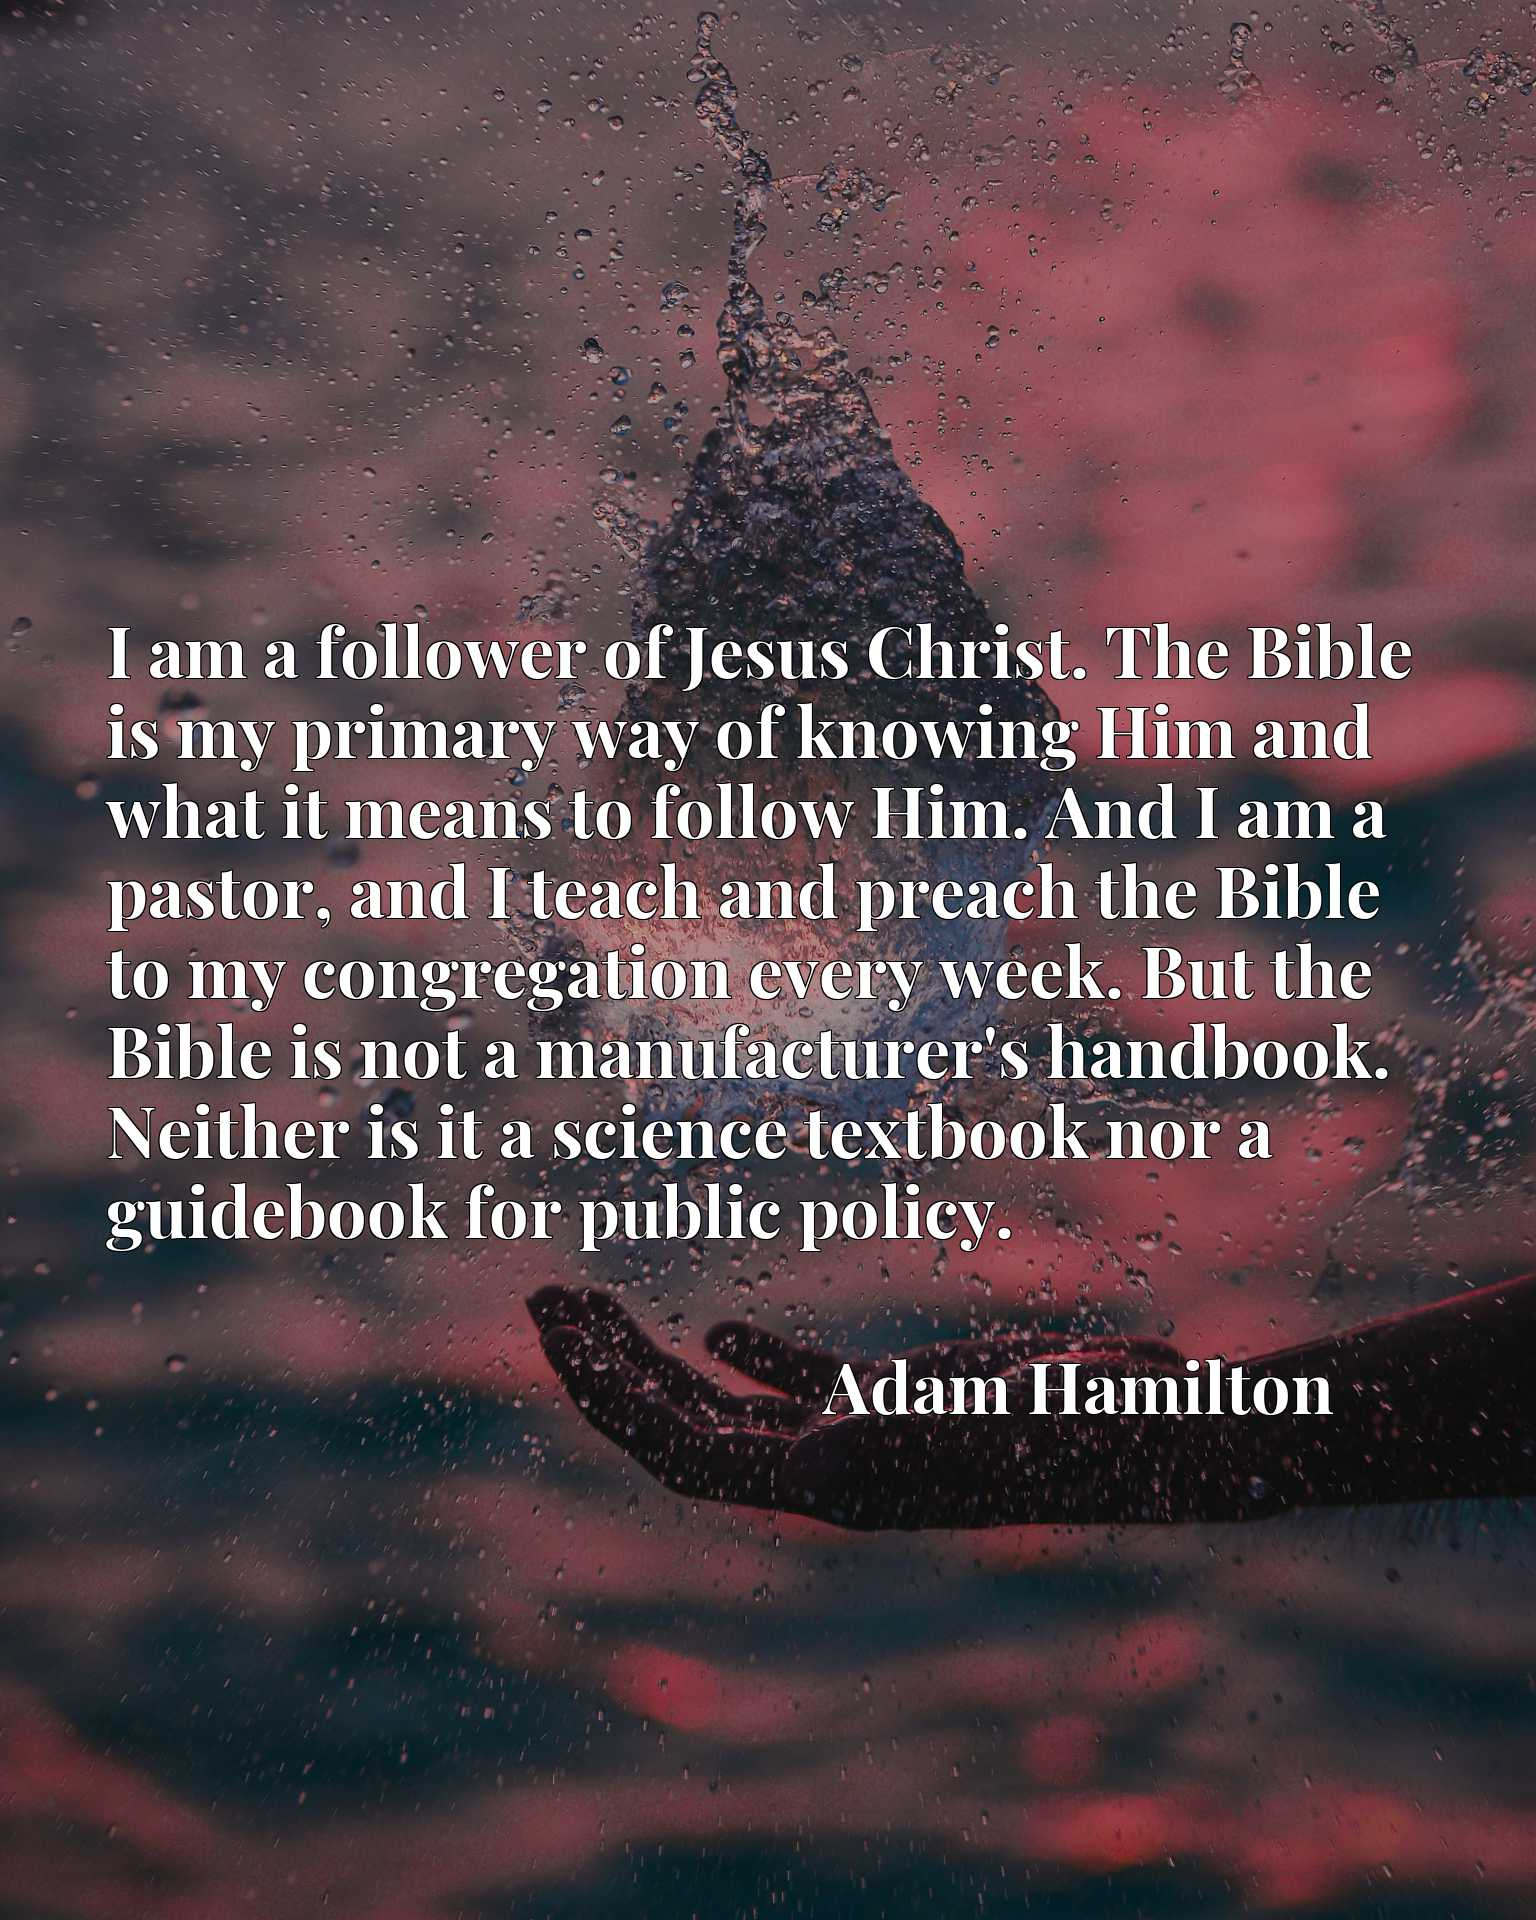 I am a follower of Jesus Christ. The Bible is my primary way of knowing Him and what it means to follow Him. And I am a pastor, and I teach and preach the Bible to my congregation every week. But the Bible is not a manufacturer's handbook. Neither is it a science textbook nor a guidebook for public policy.